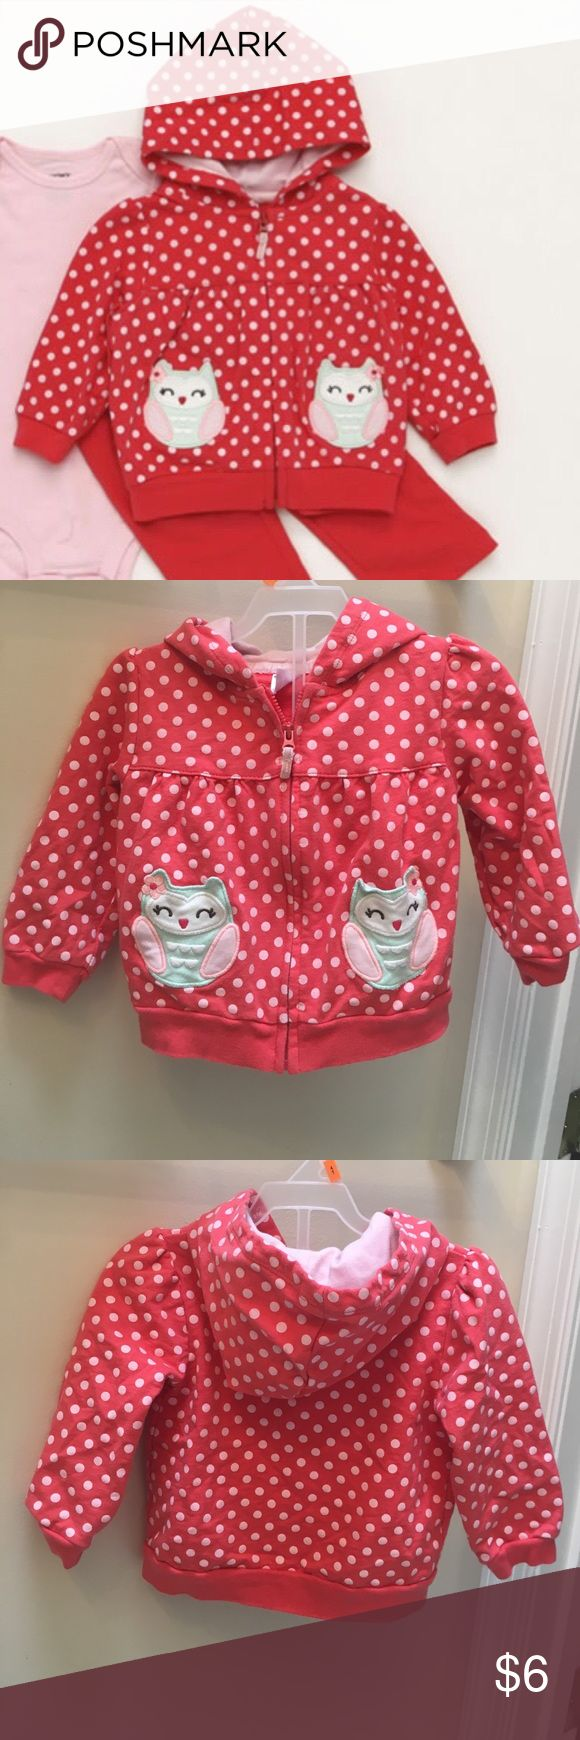 Carter's Owl Polka Dot Zip Up Hoodie Carter's Owl Polka Dot Zip Up Hoodie. In Good Used condition Carter's Shirts & Tops Sweatshirts & Hoodies